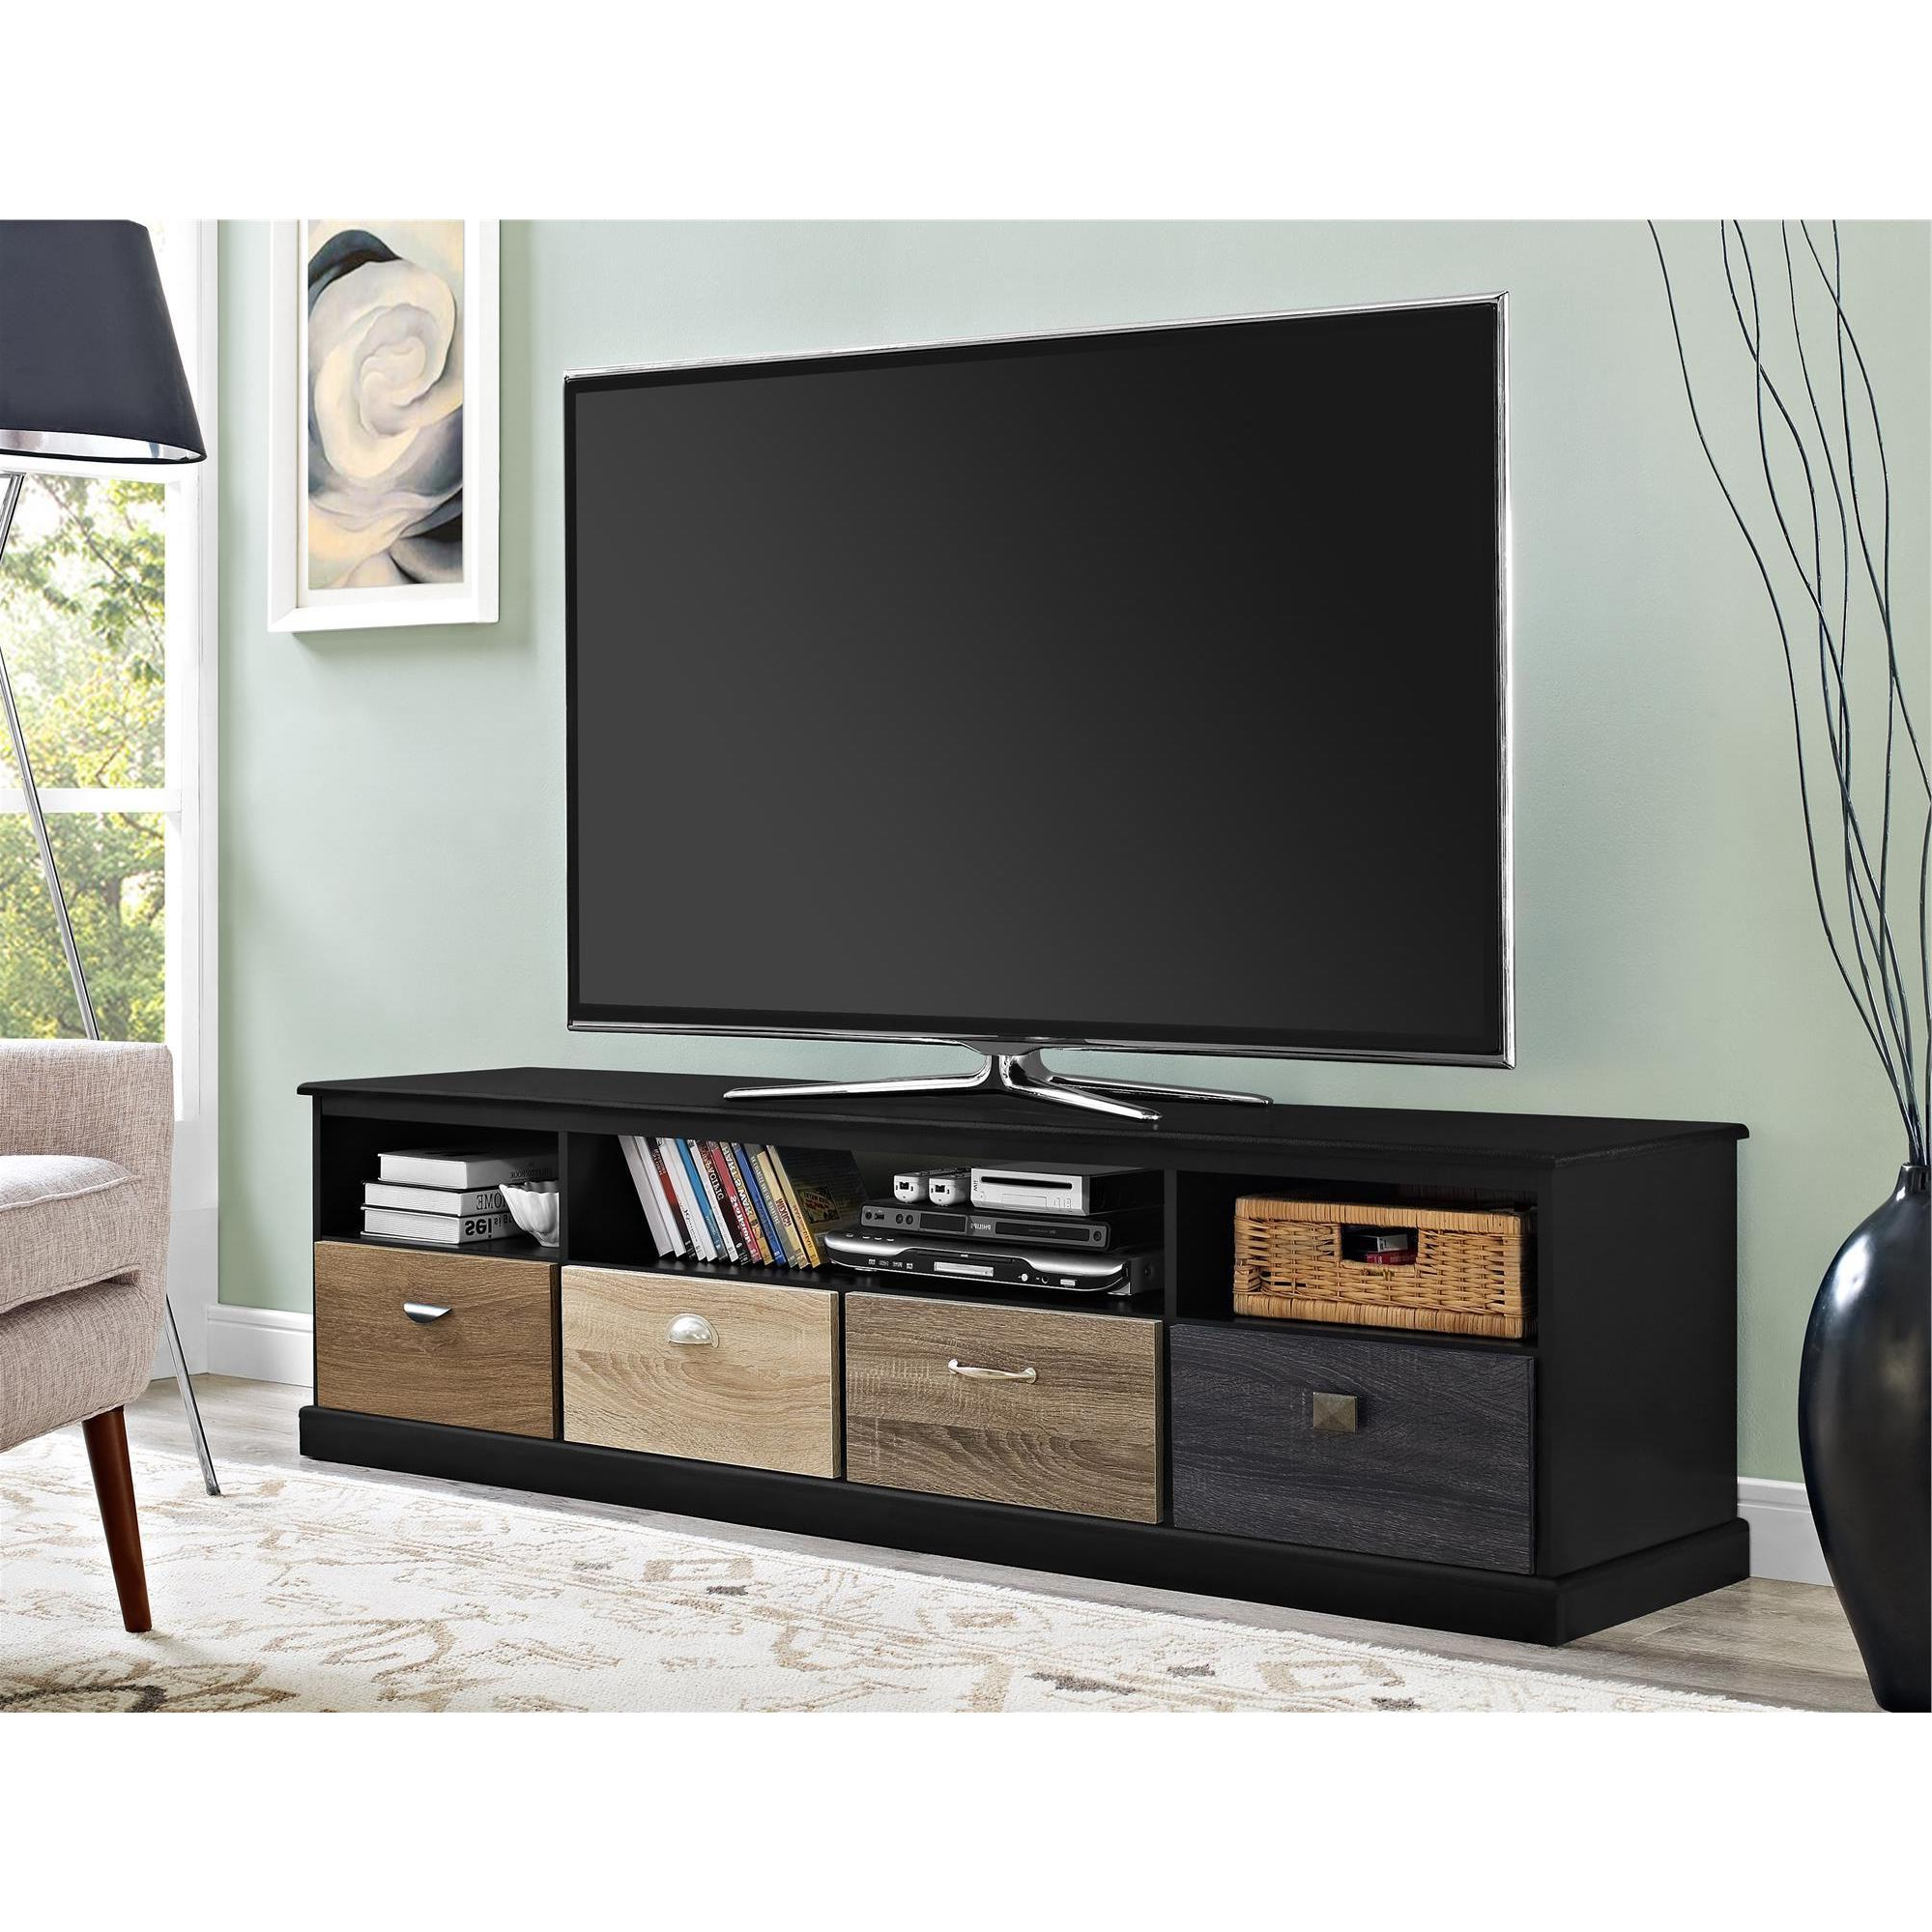 Shop Avenue Greene Mercer 65 Inch Black Tv Console With Multicolored Pertaining To Kilian Grey 49 Inch Tv Stands (View 3 of 20)